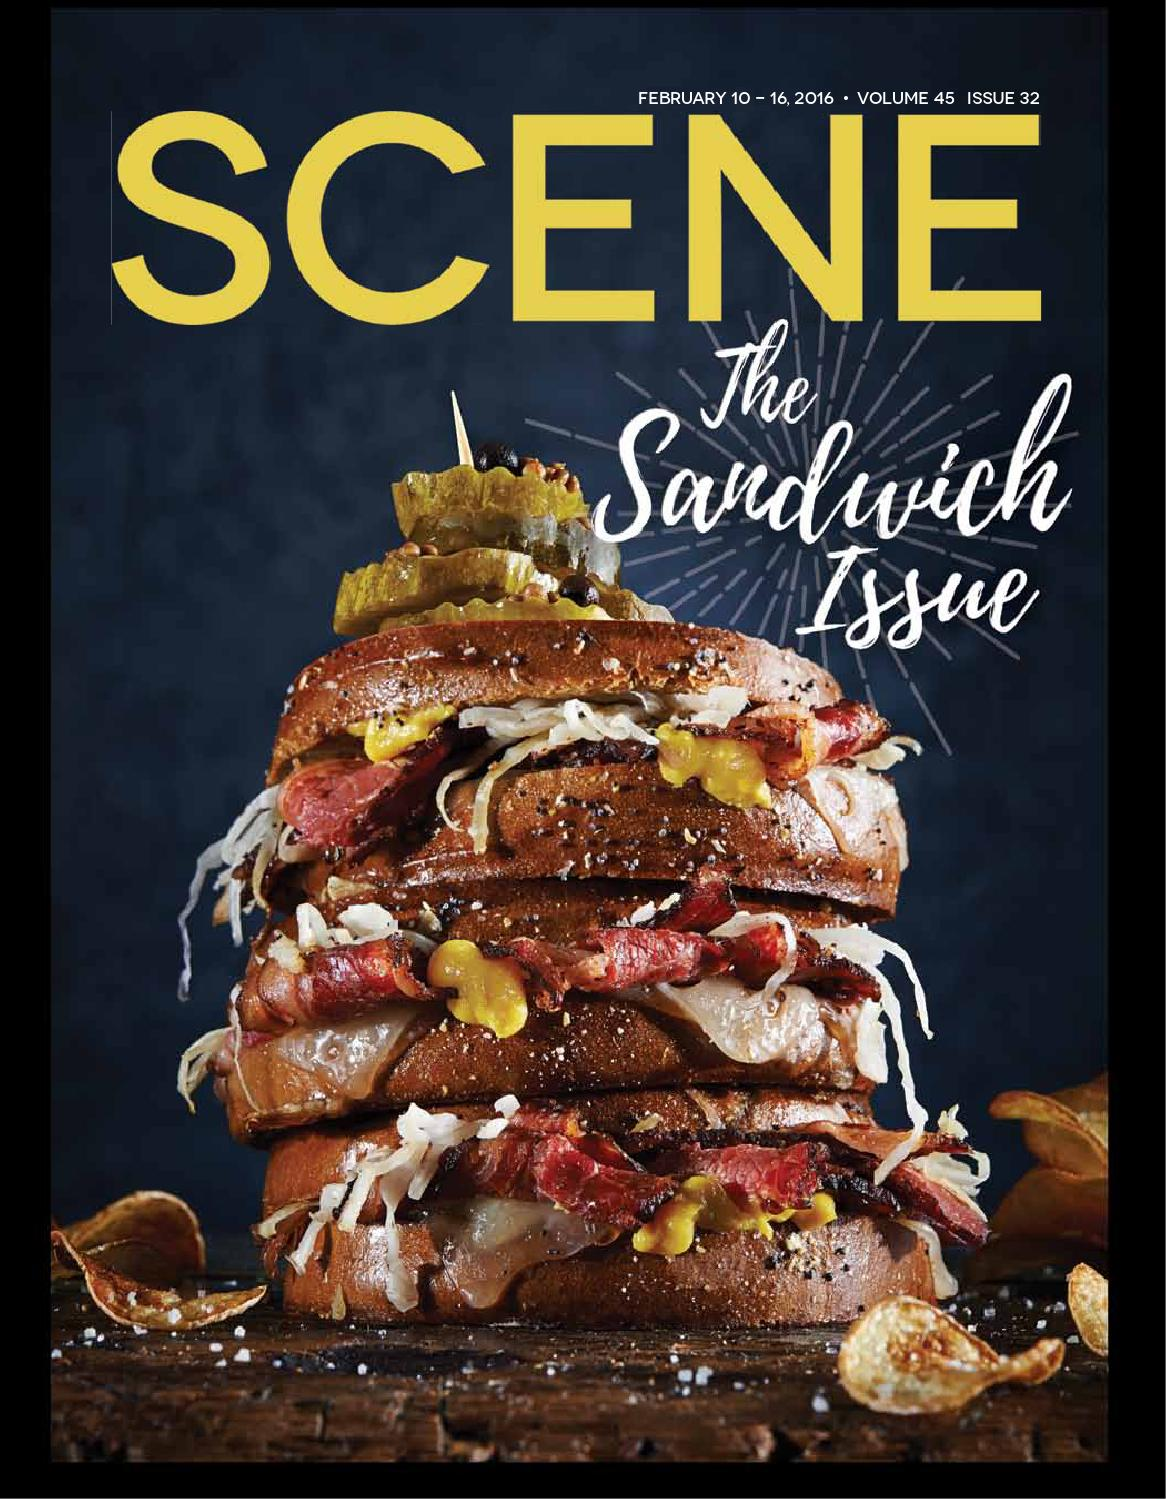 Scene Feb 10, 2016 by Euclid Media Group - issuu